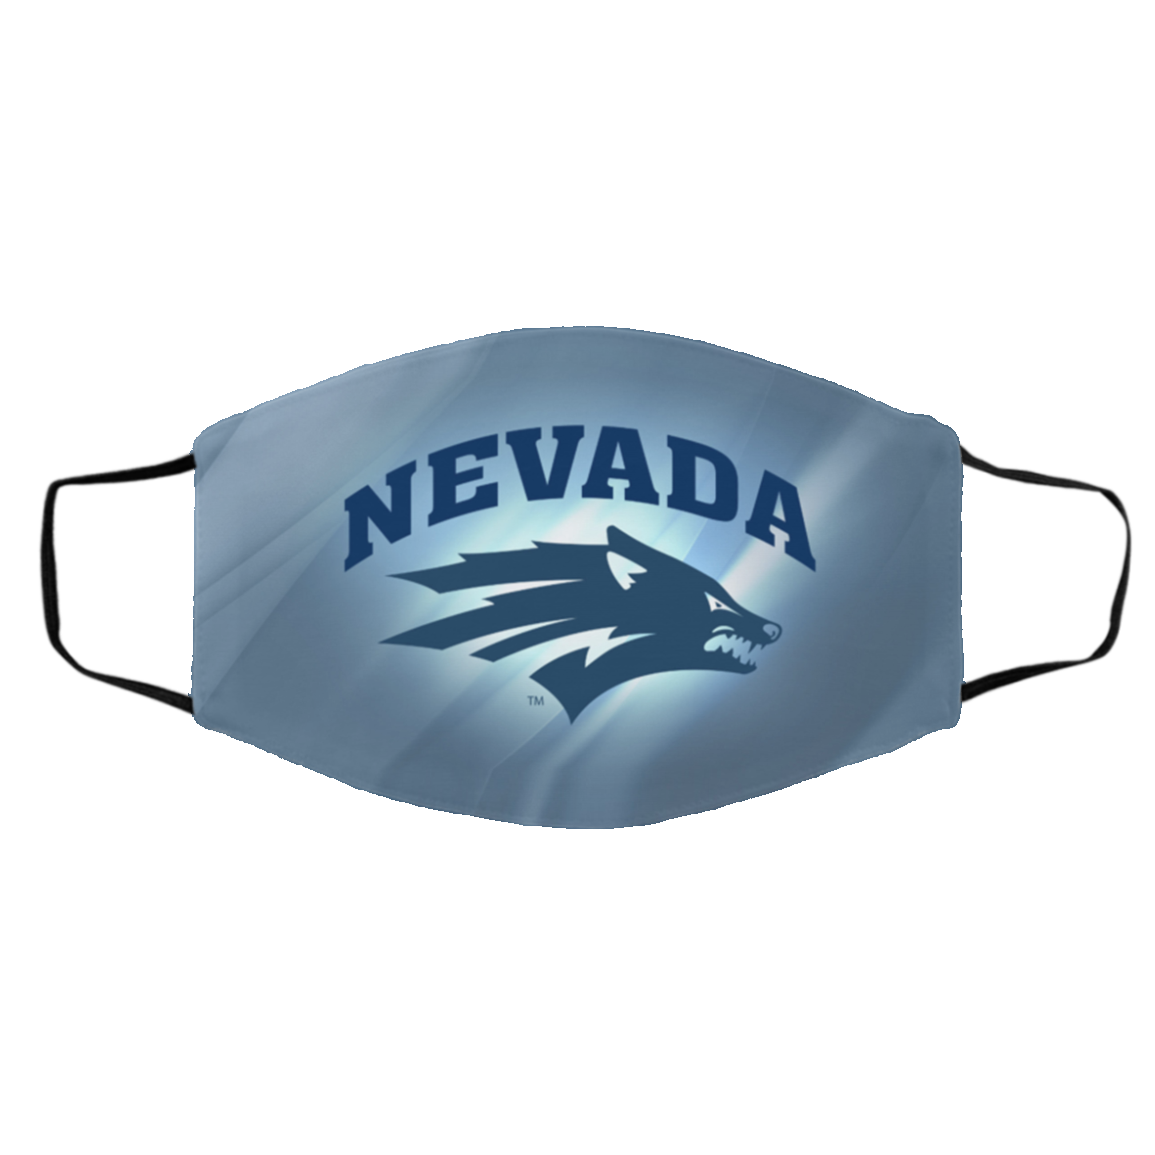 Ne-v-ada W-olf -Pack Face Mask – Logo CLOTH Face Masks